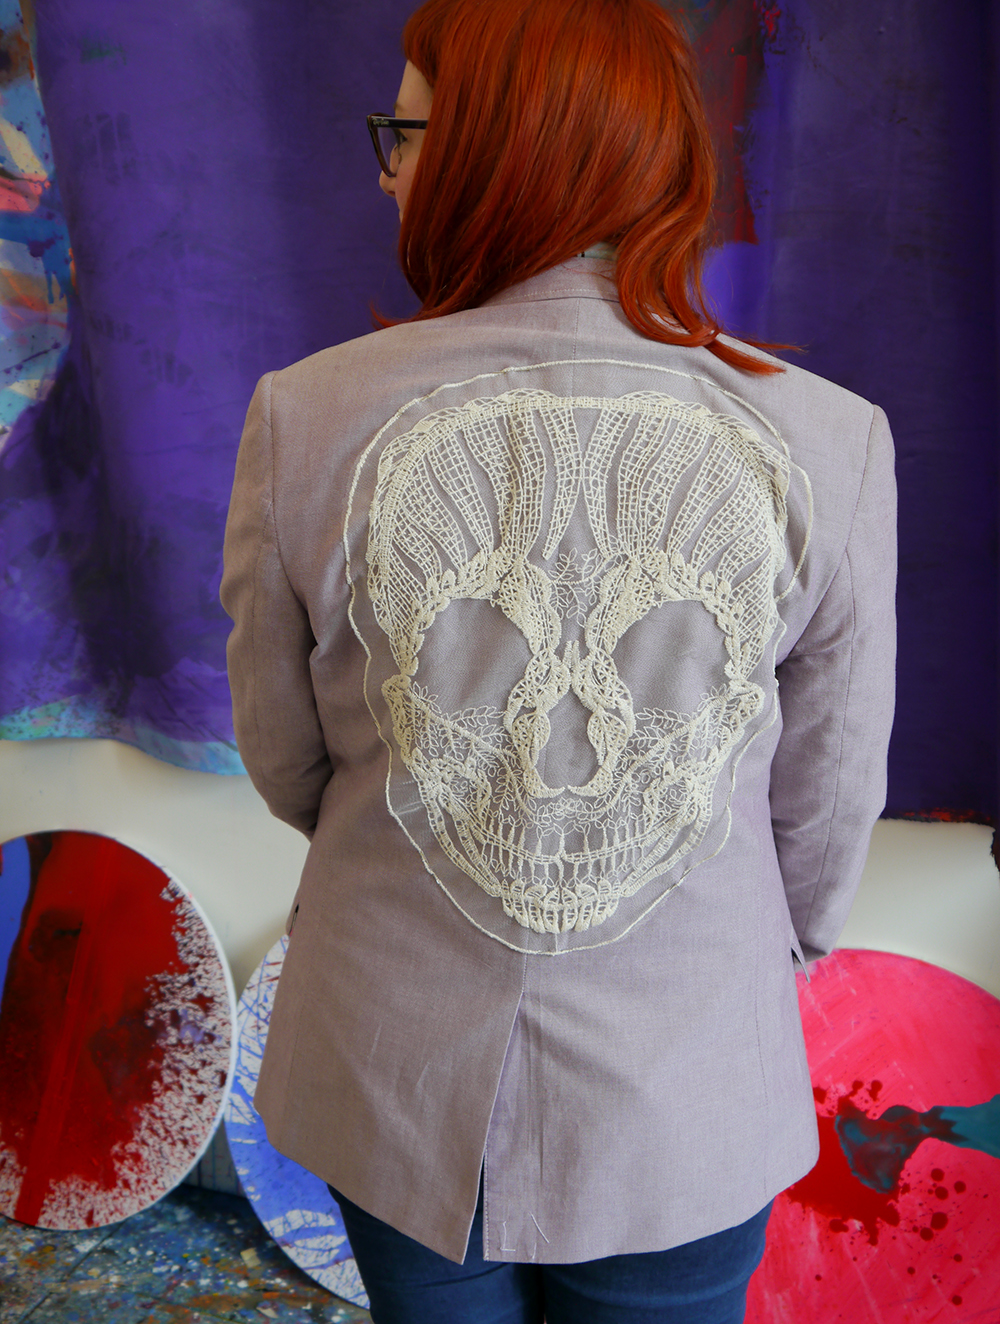 Dundee, Wasps Studios, Meadow Mill, artist studio, studio visit, Jack(et), Jill Skulina, blogging duo, Scottish Bloggers, Dundee Bloggers, jackets, embroidery, customisation, custom orders, wearable art, Louise Ritchie, skull jacket, skull embroidery